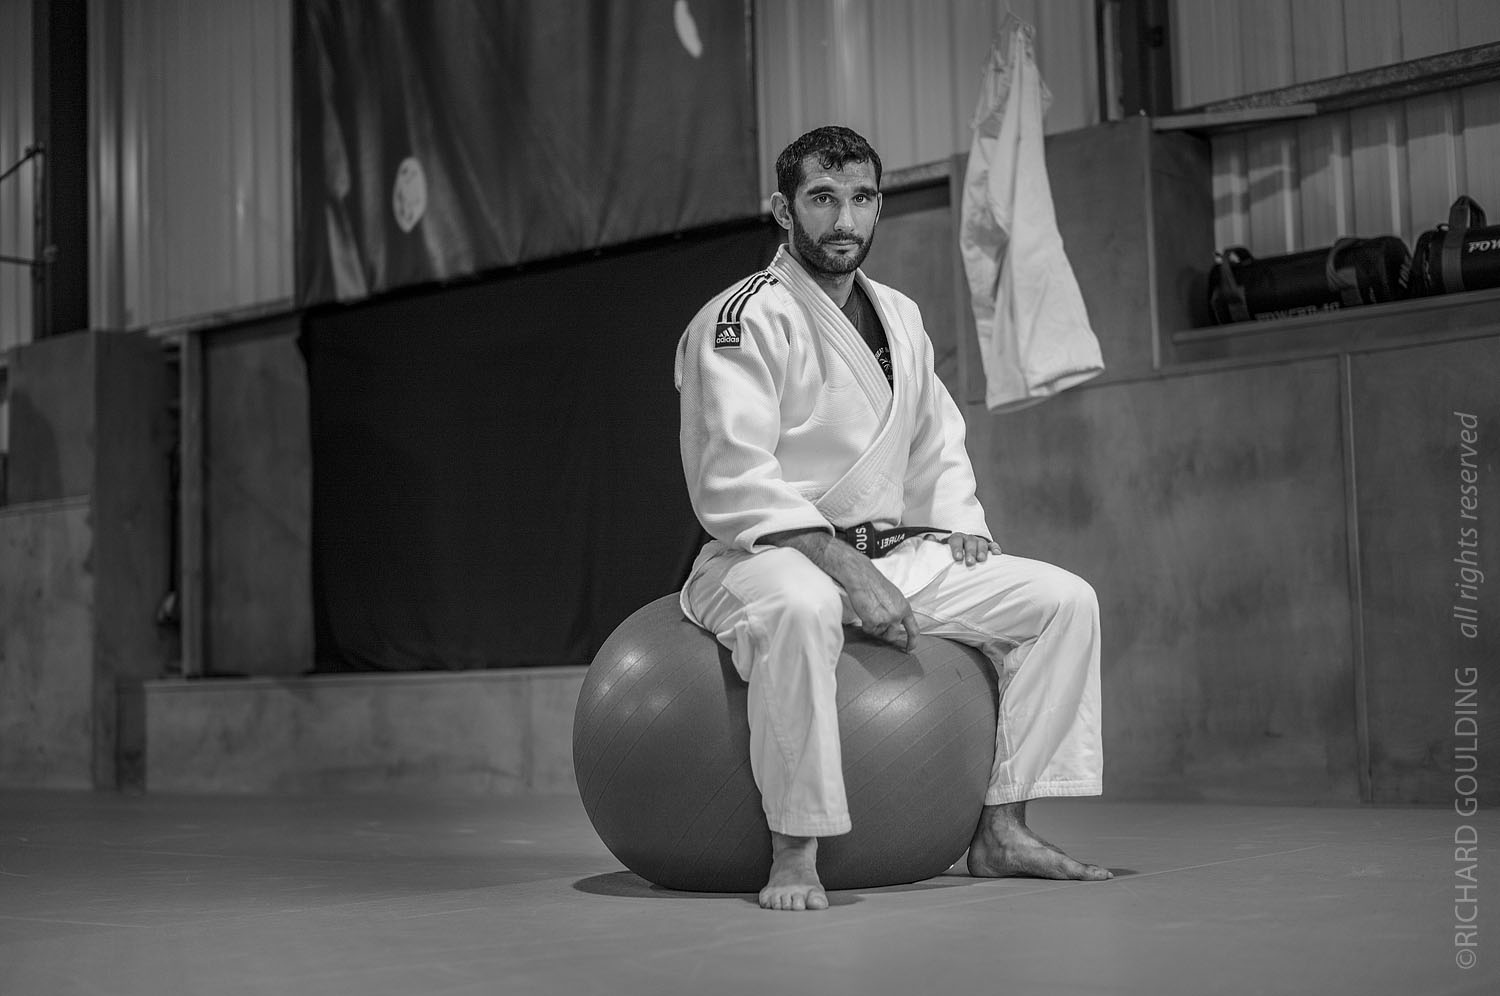 Aurelien Broussal photographed at Kendal Judo Club 2011, ©Richard Goulding, image not included in book.